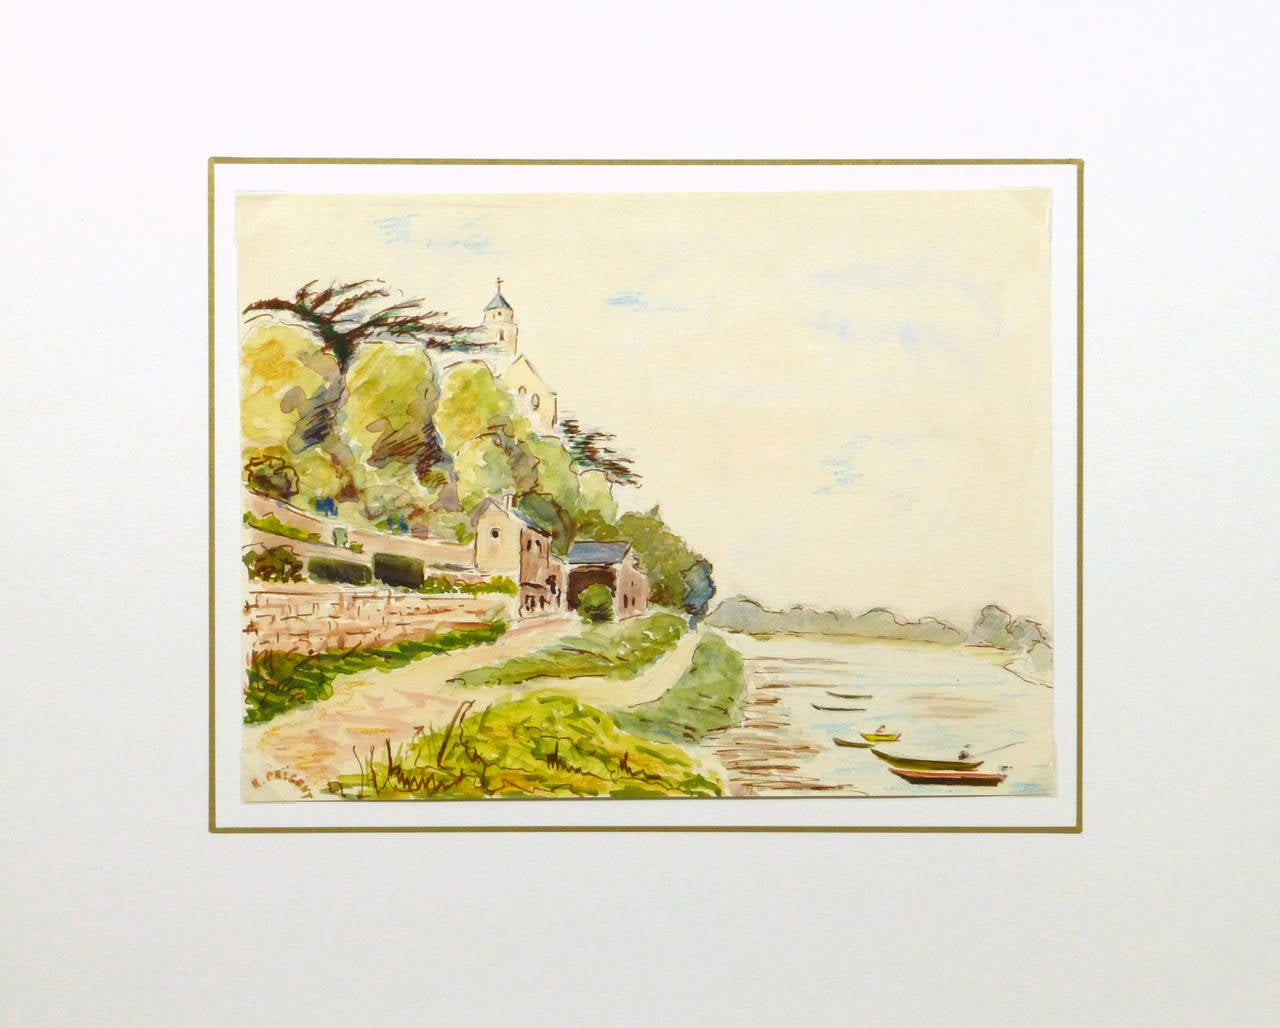 Picturesque French watercolor depicting a tranquil scene of the town of Saint Florent le Vieil, France situated along the Loire River showing fishing boats, a church, and buildings from the town by R. Prigent, 1973. Signed lower left.   The town is